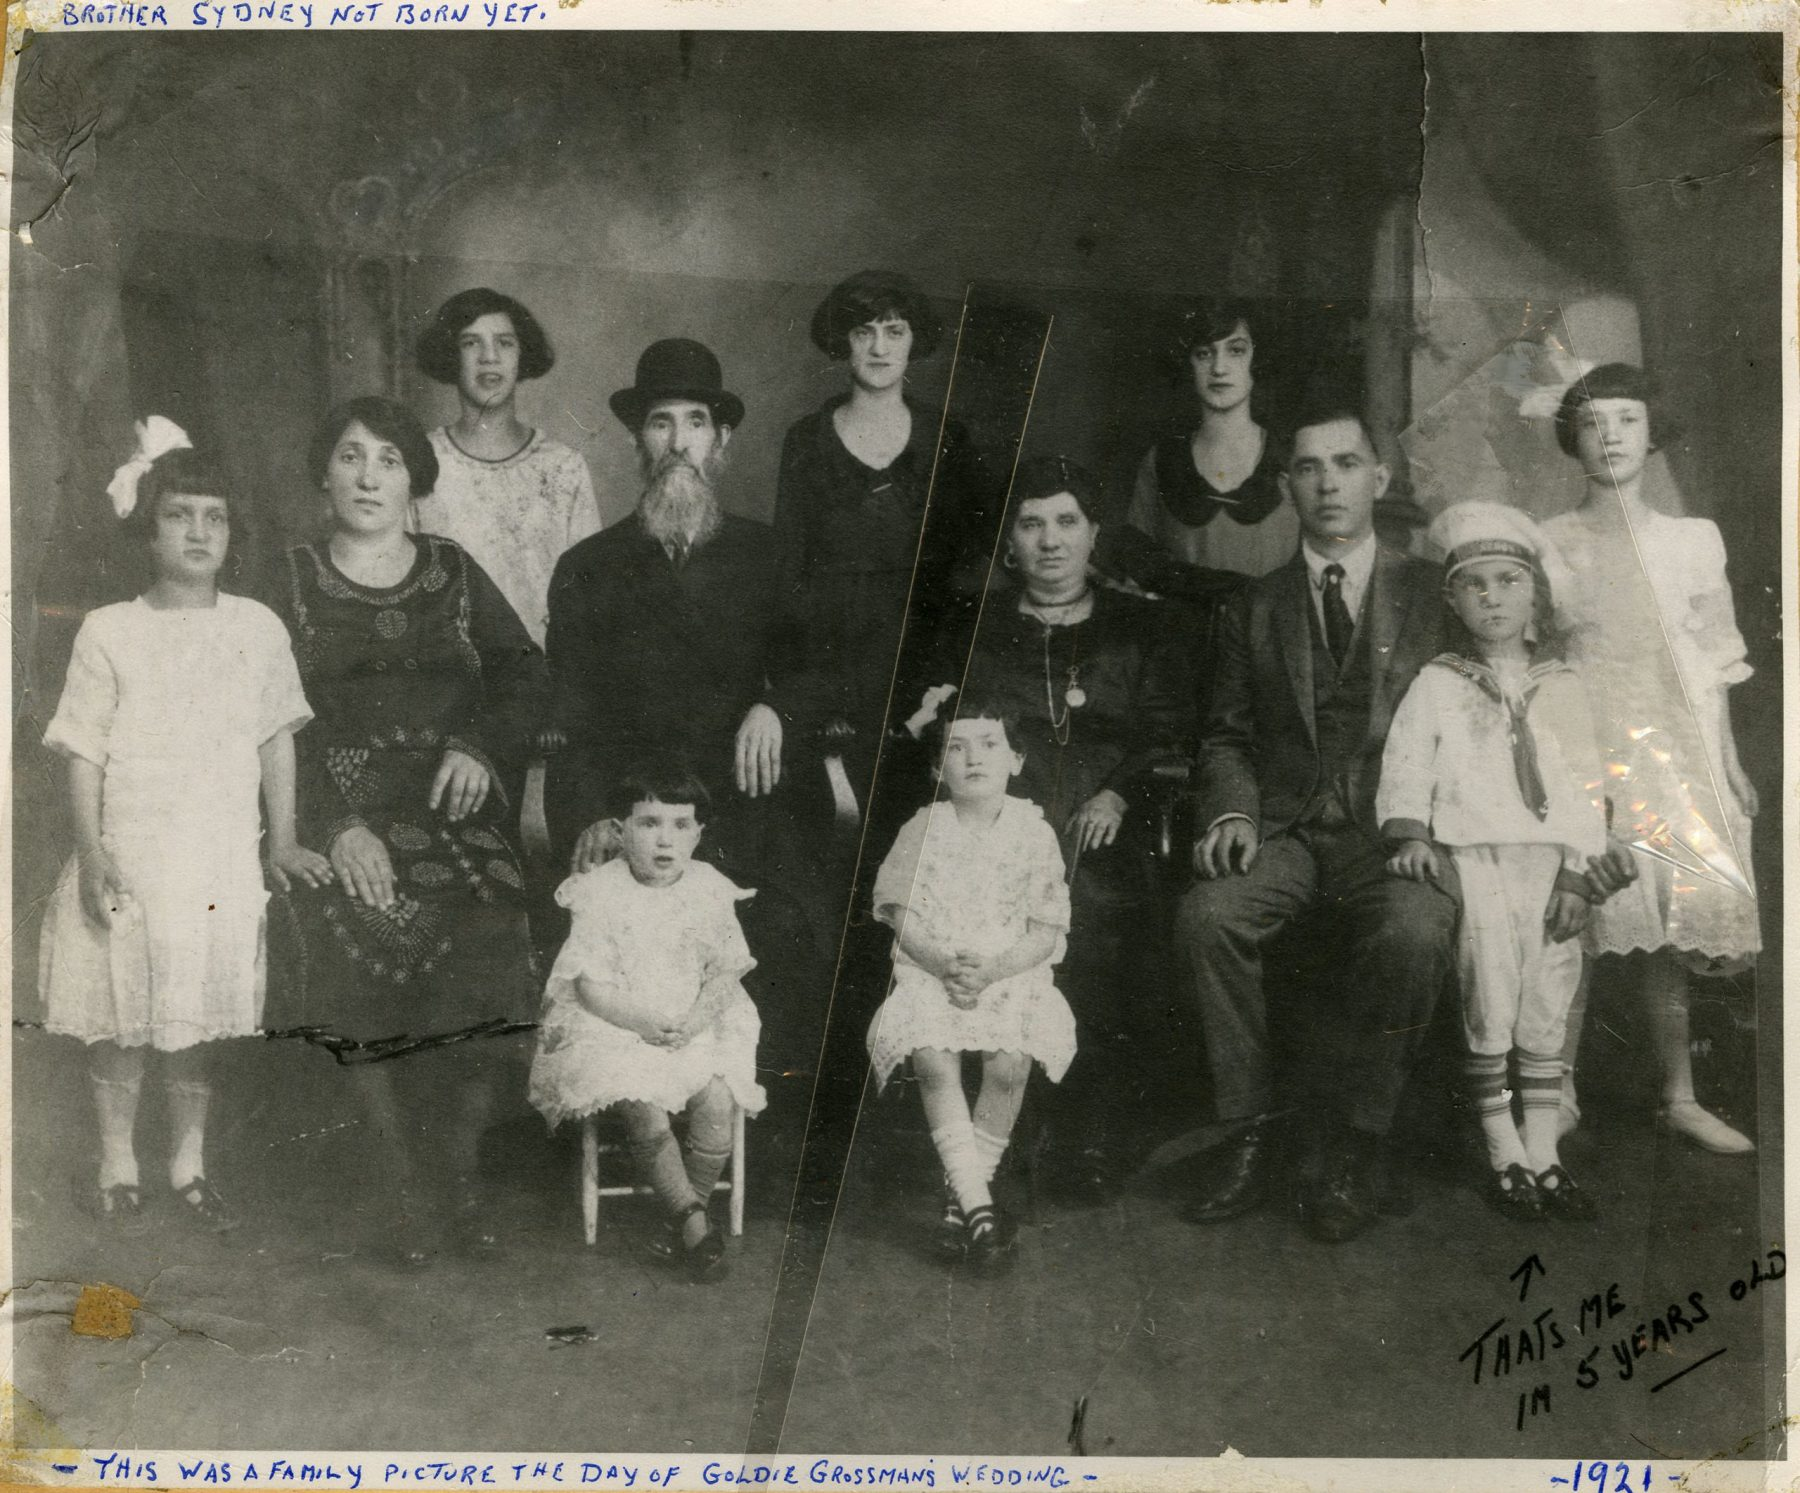 """Portrait of the Luftspring family at the Ostrovzter Synagogue on Cecil Street to mark the marriage of Max Lightstone and Goldie Grossman on 9 June 1922. In the top-left corner Sammy has indicated that his younger brother Sydney was not born yet. In the bottom right corner, Sammy annotated the photo with an arrow pointing to himself, """"That's me. I'm 5 years old.""""   OJA, fonds 82, item 1."""